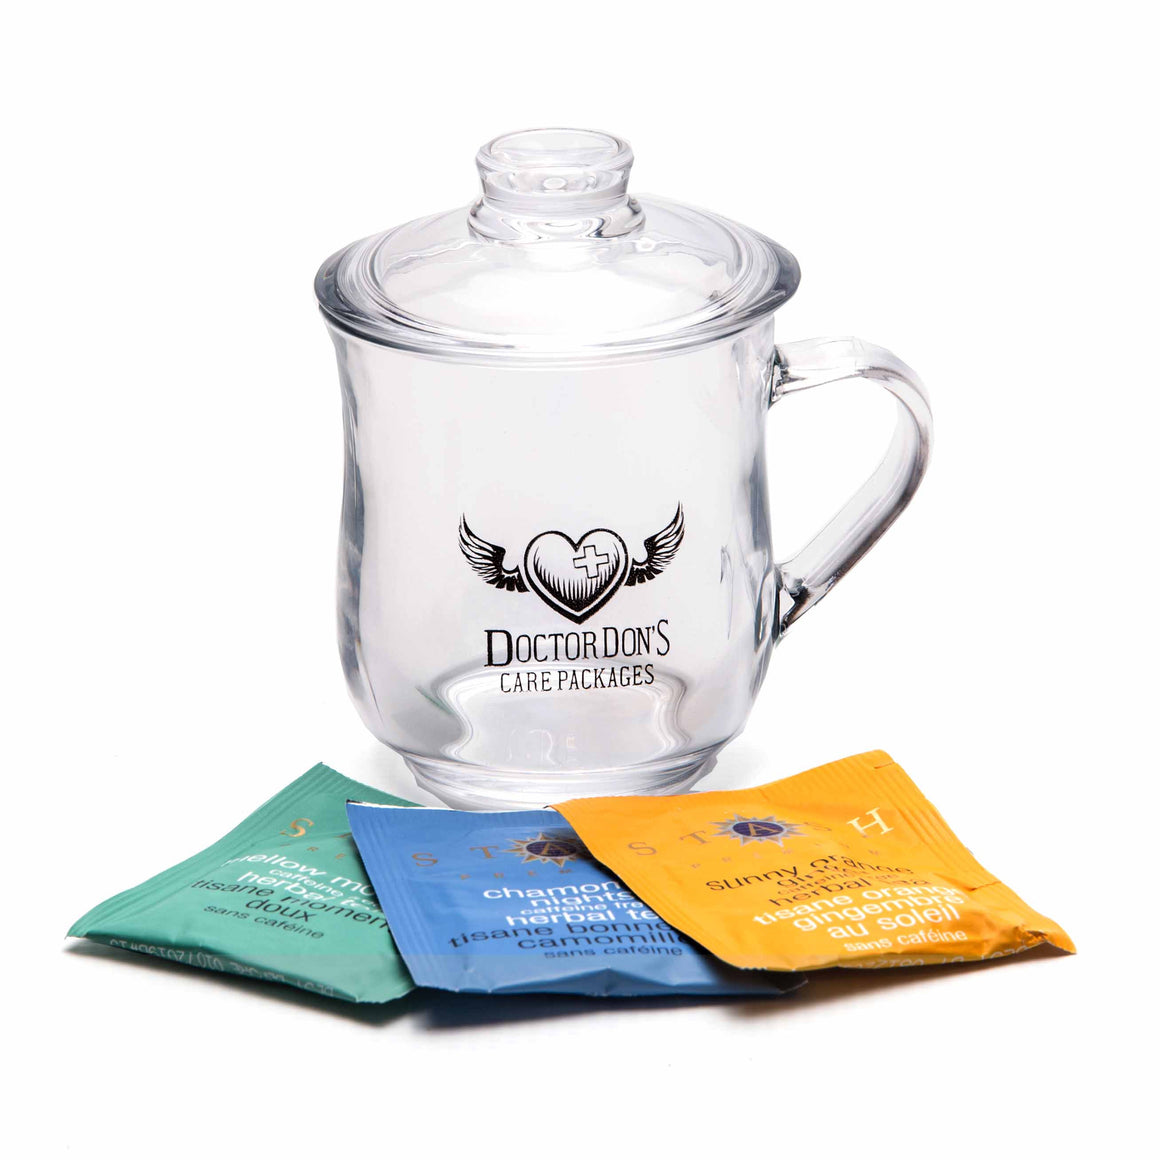 Classic Glass Tea Mug product image - included with Dr. Don's Care Packages Sympathy Condolence Care Package.